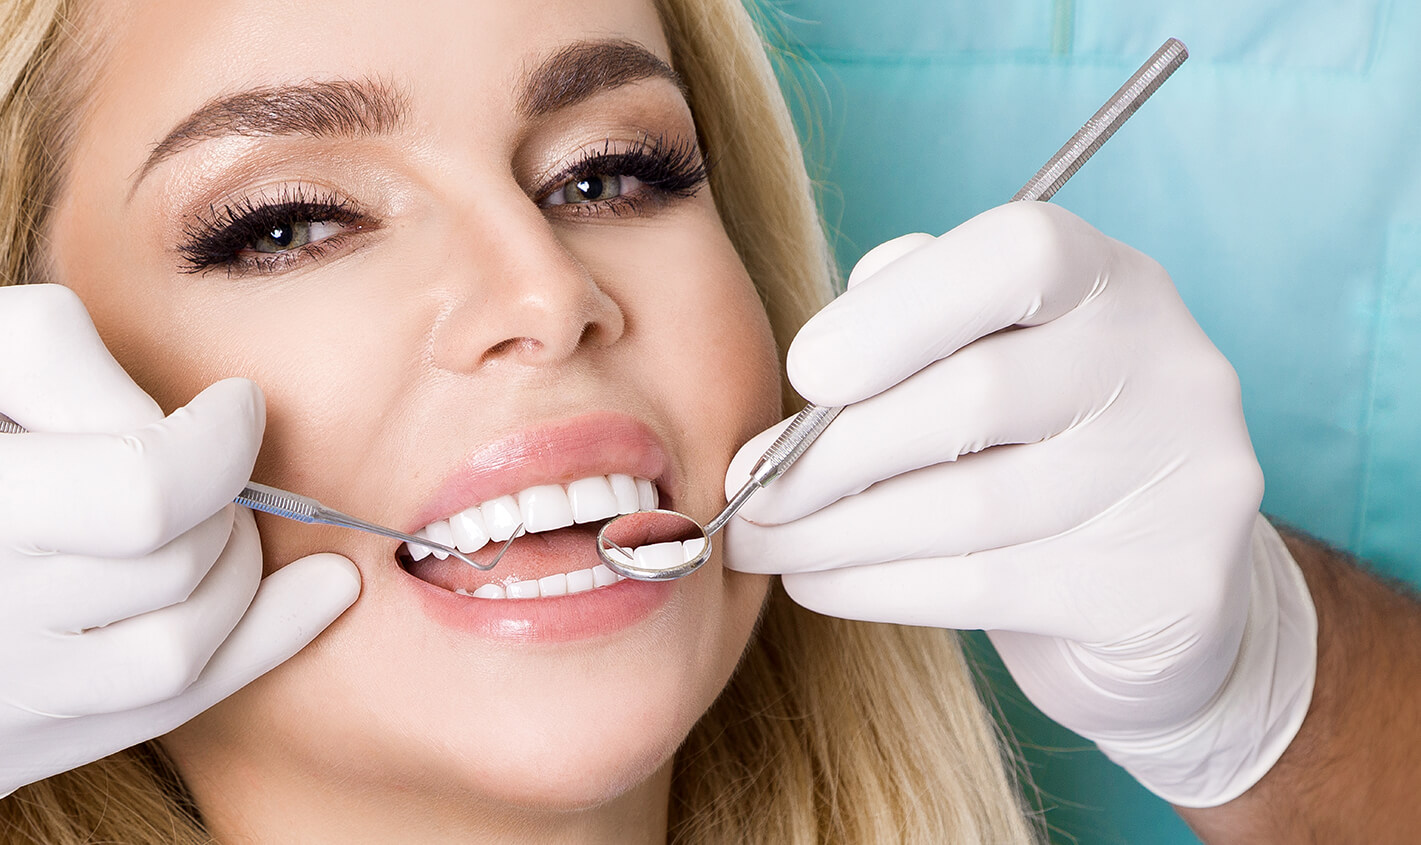 Individuals in Tucson, AZ Are Reaping the Benefits of Porcelain Veneers Applied by Dr. Colby Echols